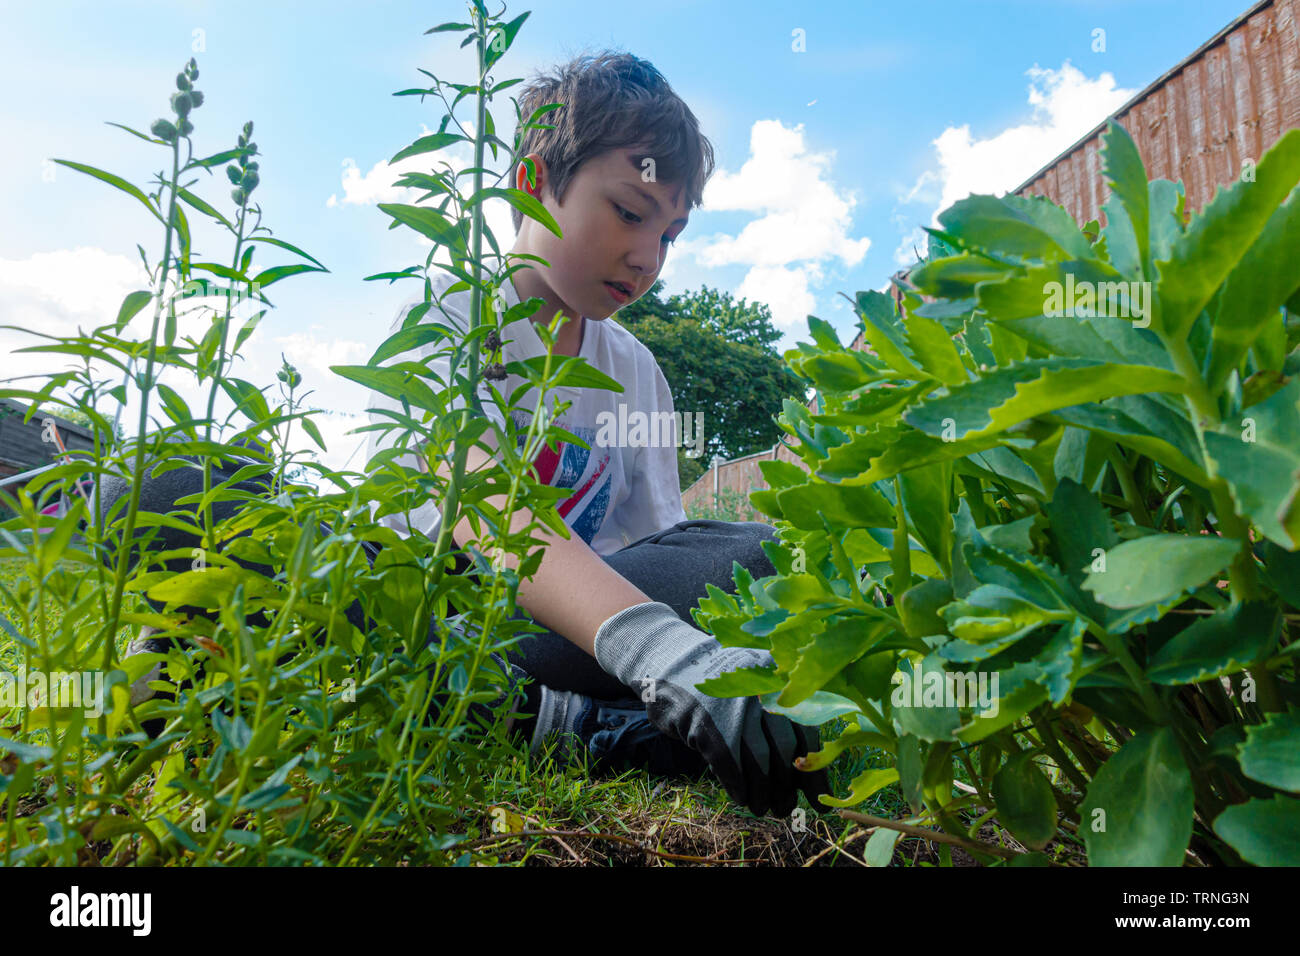 a-young-boy-helping-doing-weeding-gardening-outside-in-the-garden-TRNG3N.jpg